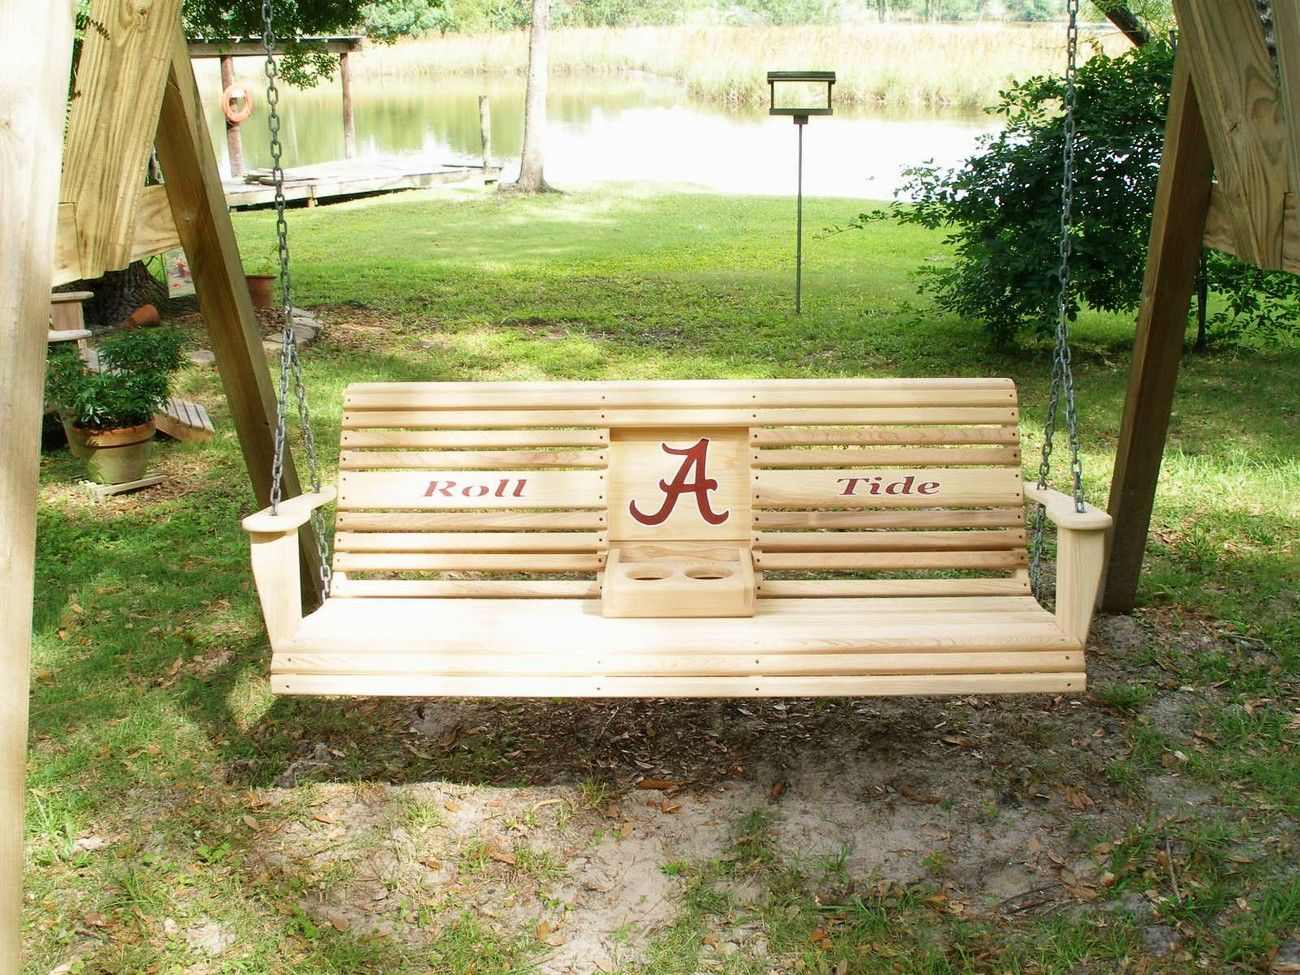 Porch Swings | Alabama Crimson Tide Porch Swing!   Swings